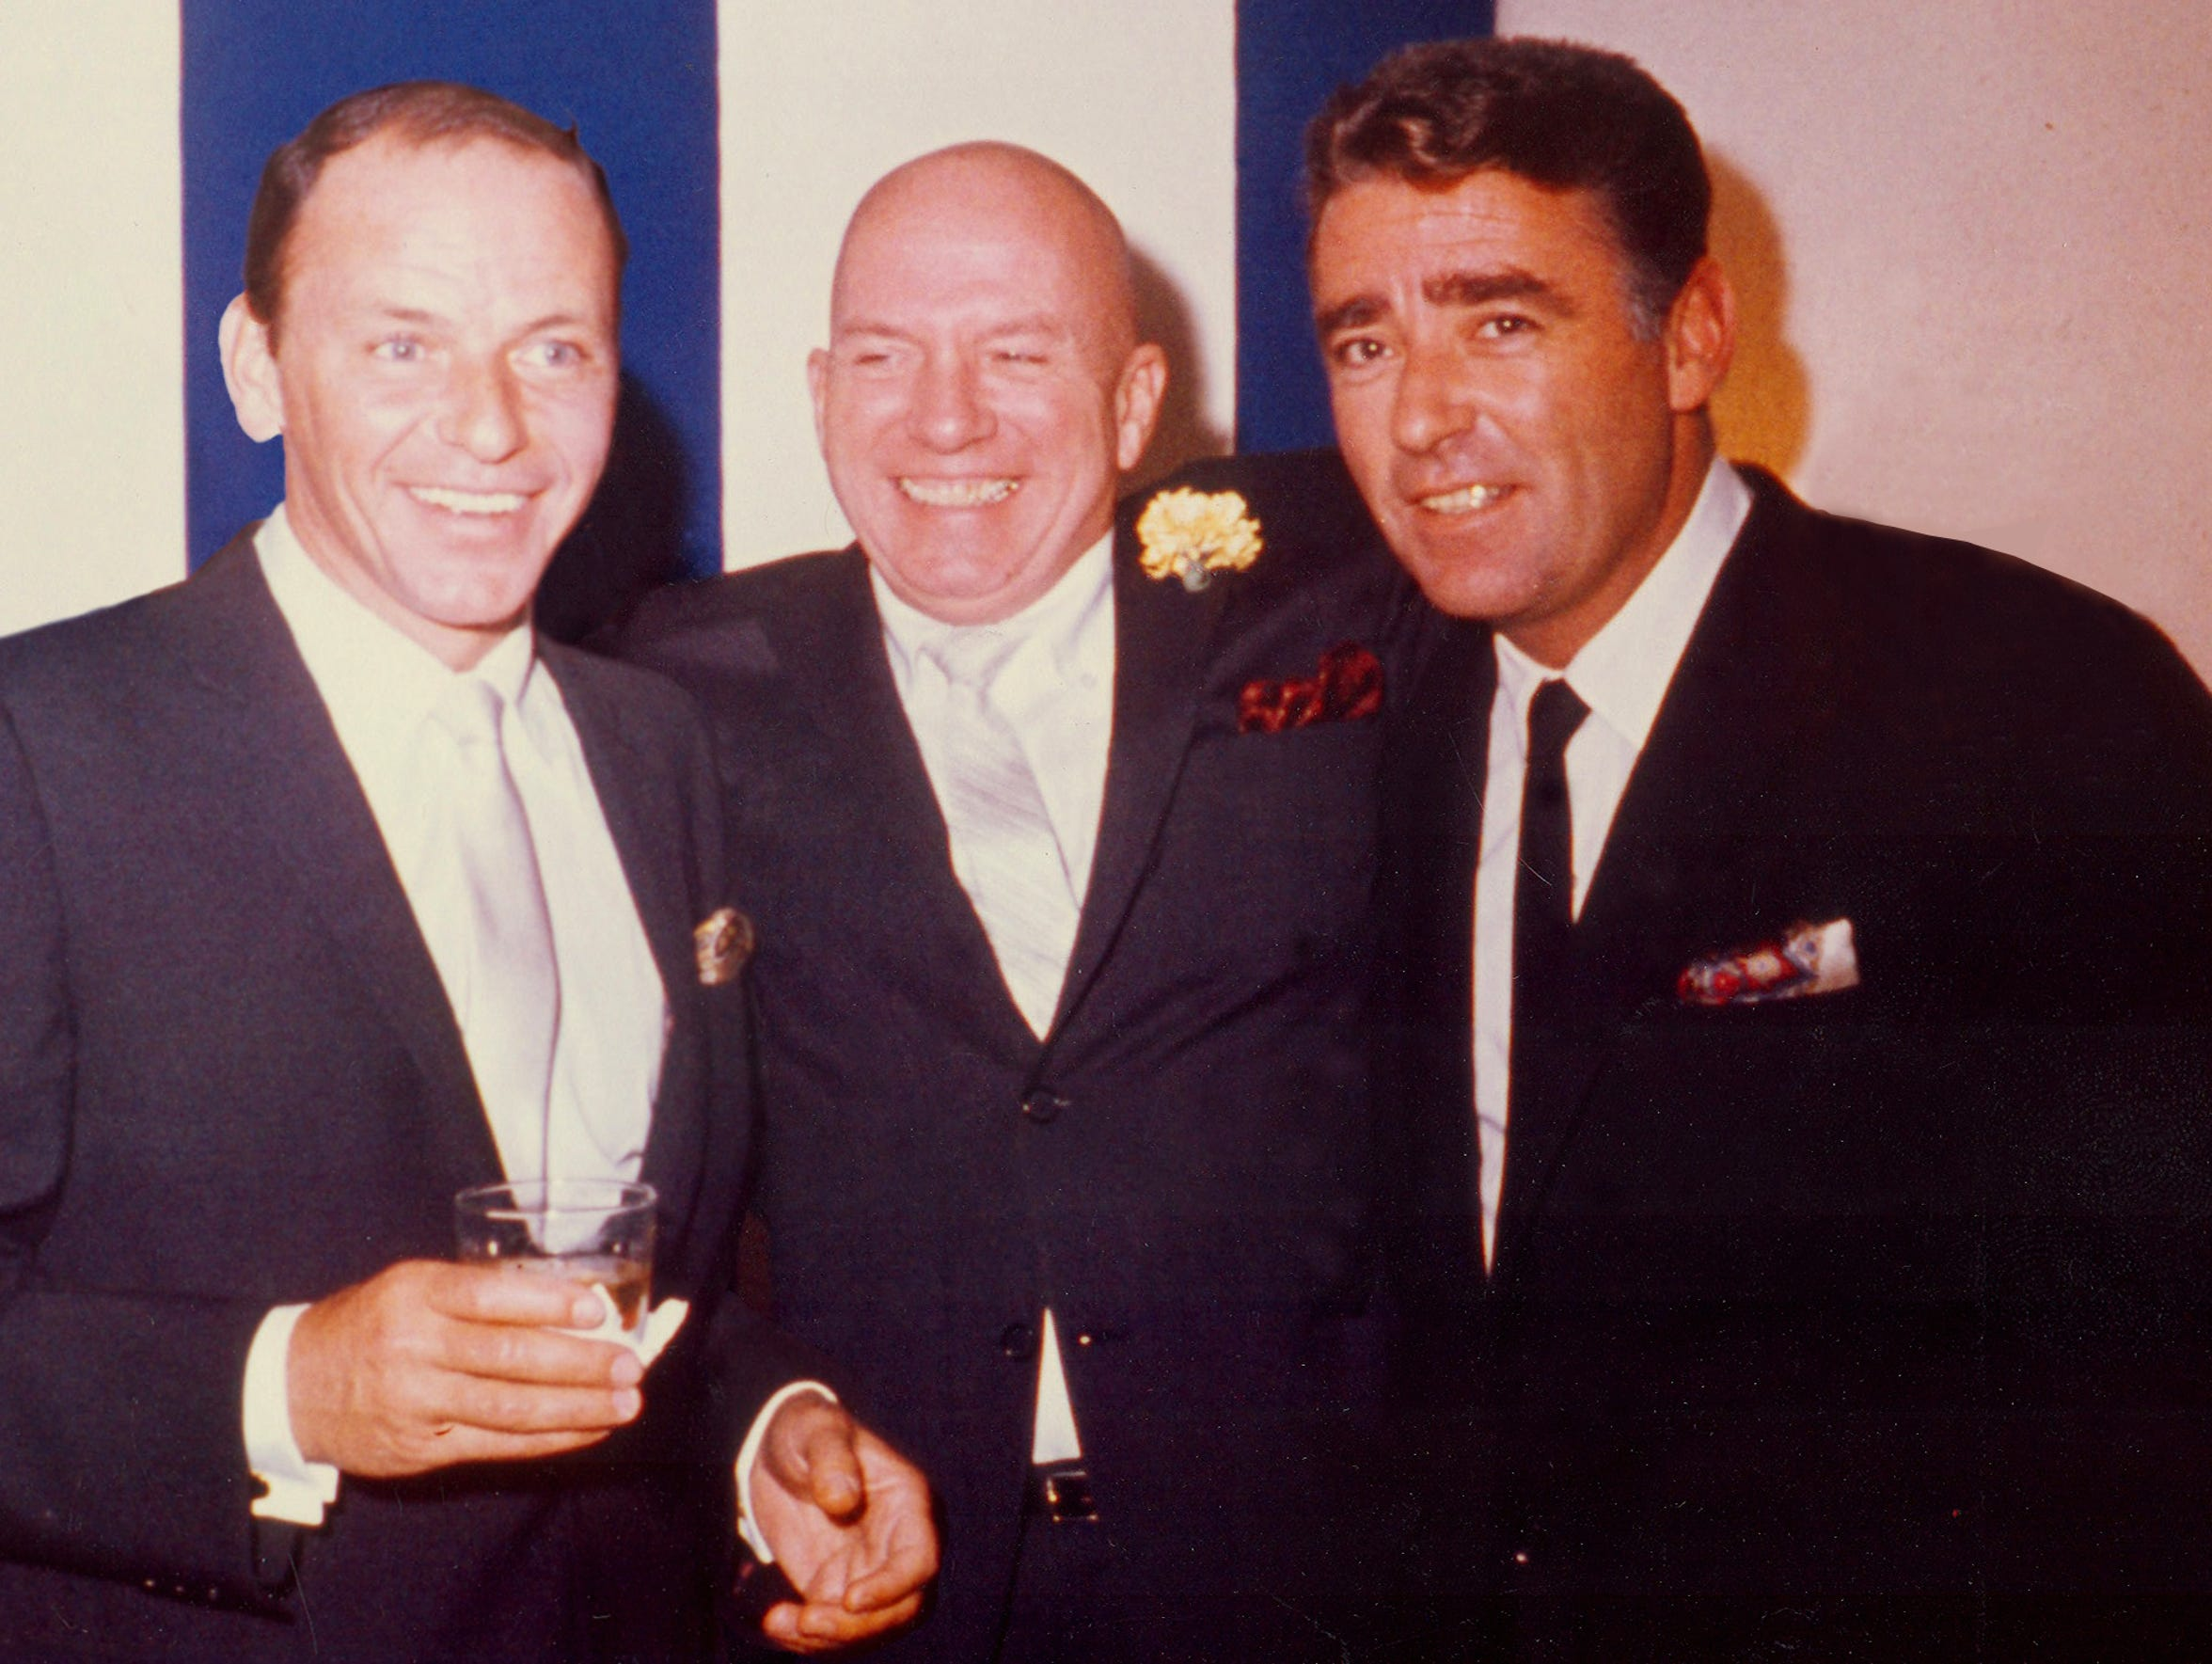 Frank Sinatra (from left), Jimmy Van Heusen and Peter